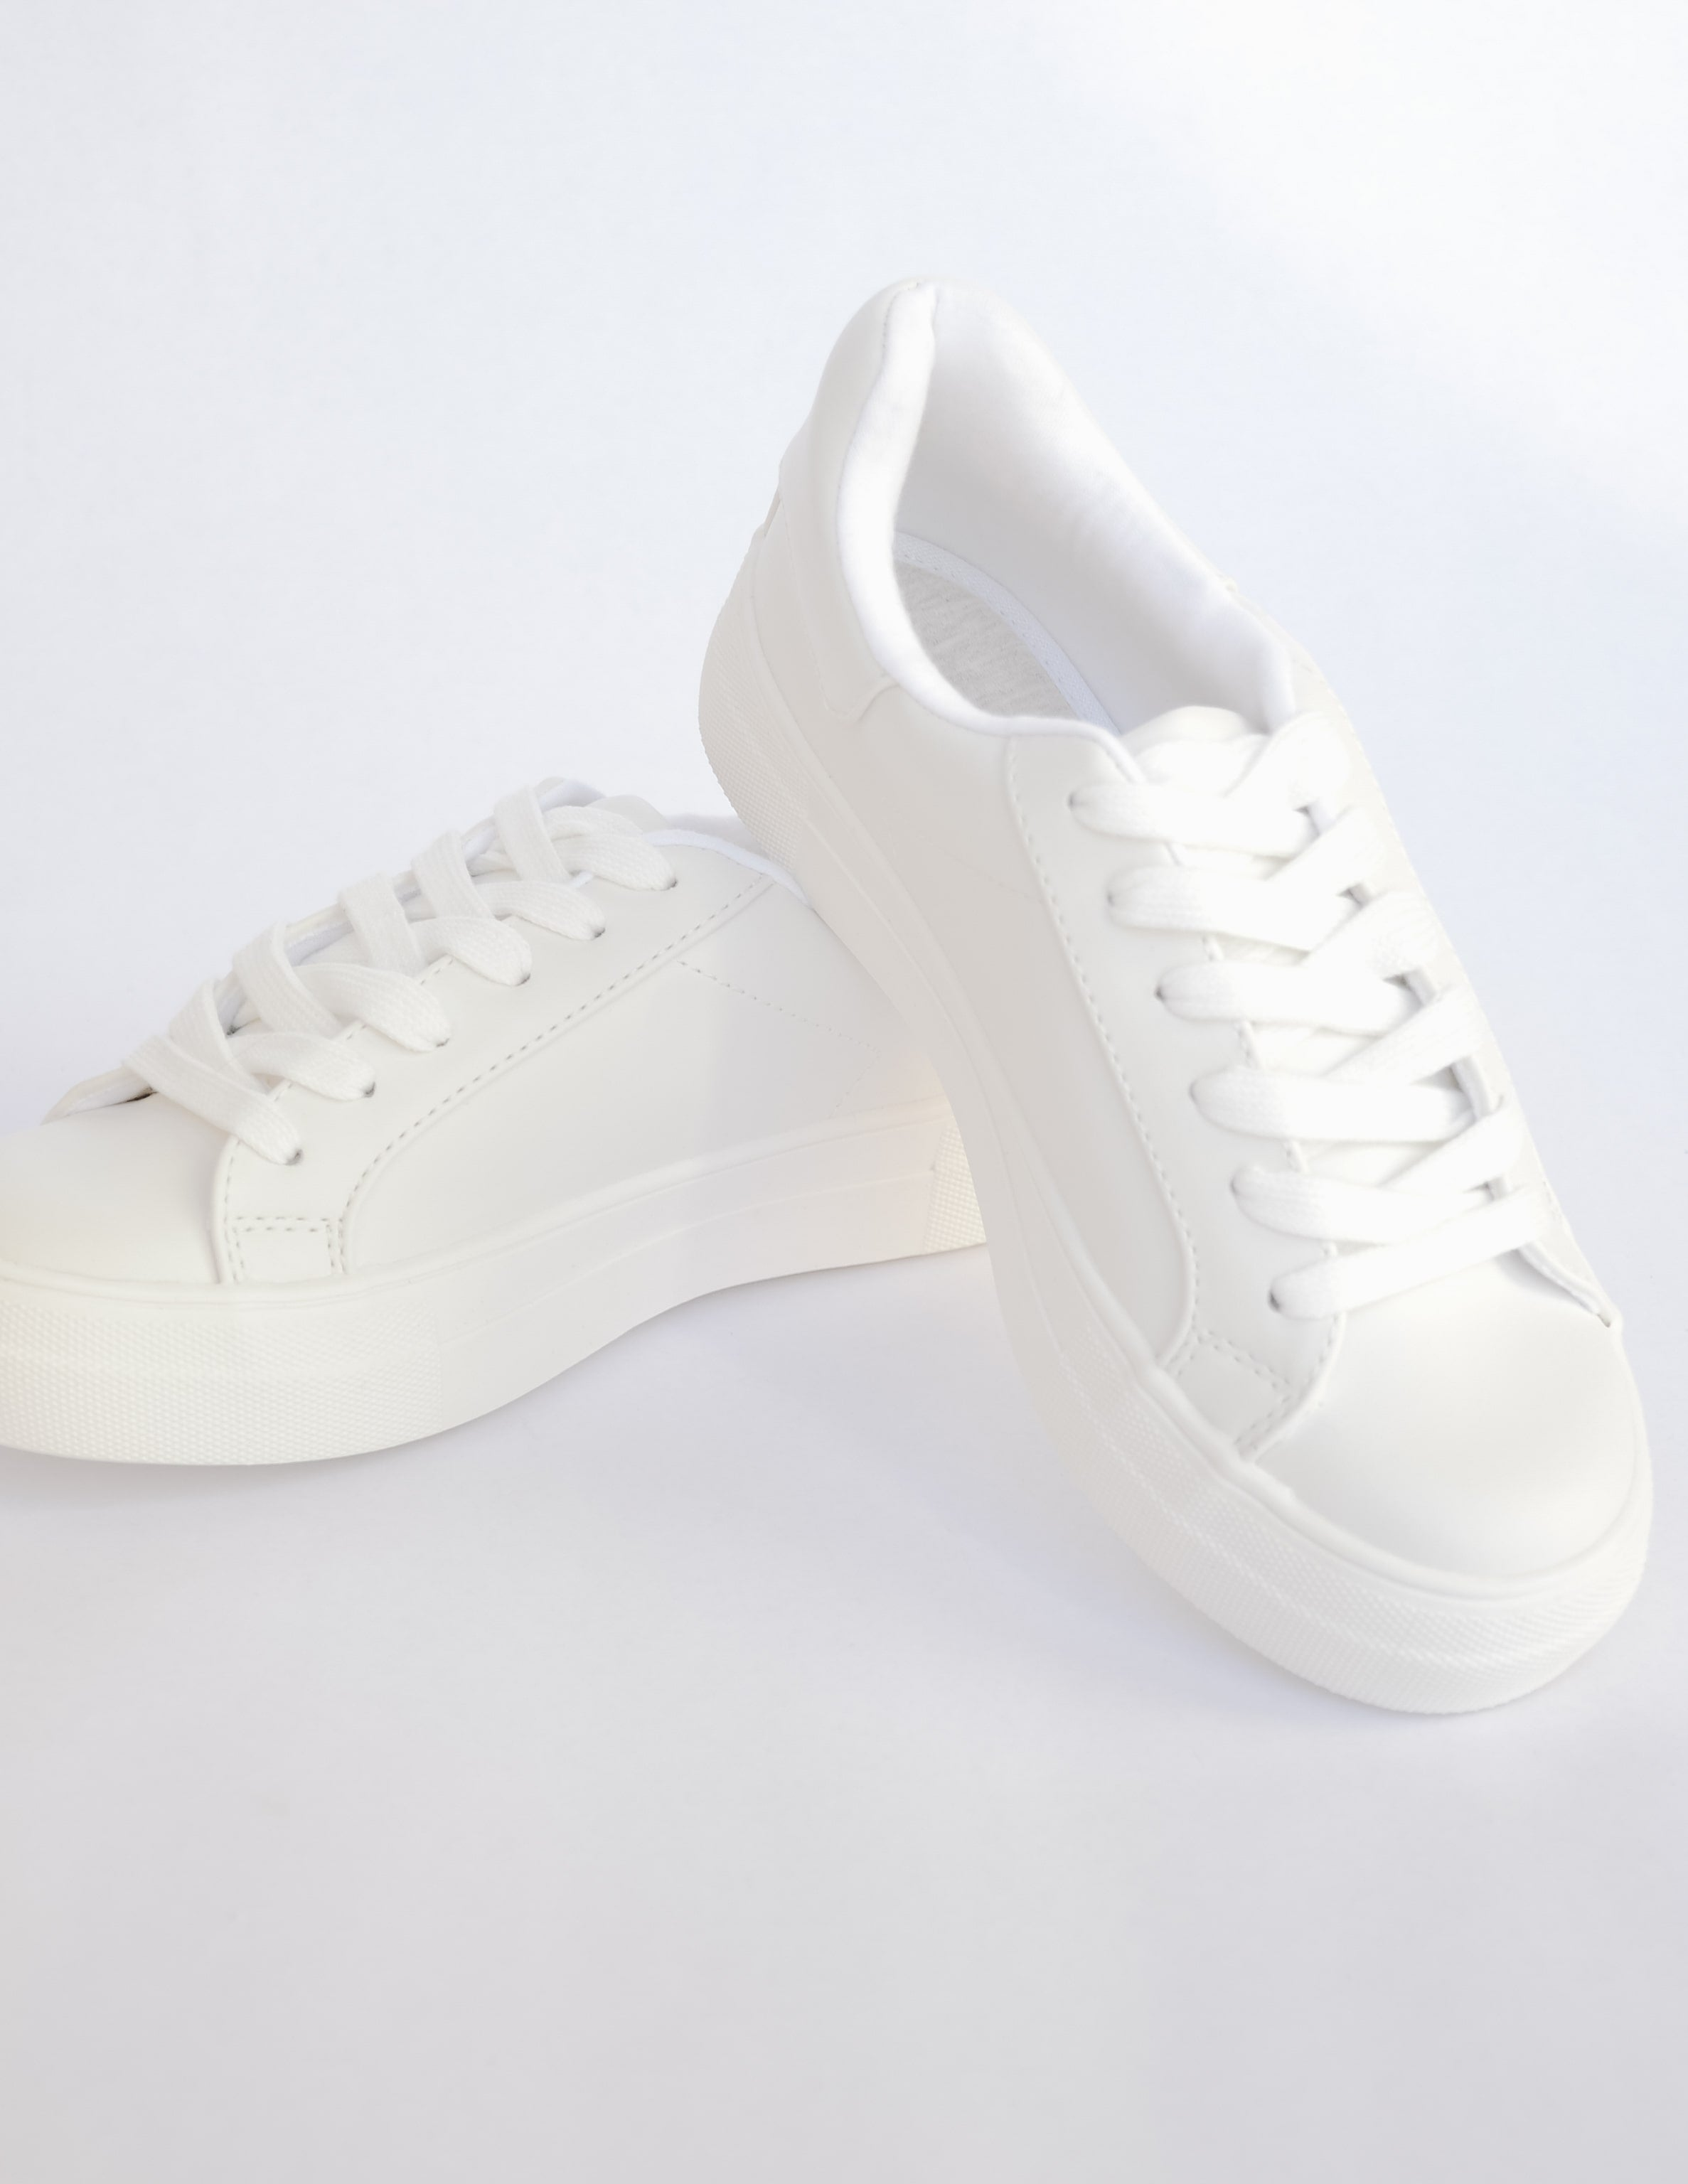 All white sneakers with flat wide laces and thick rubber sole - elle bleu shoes